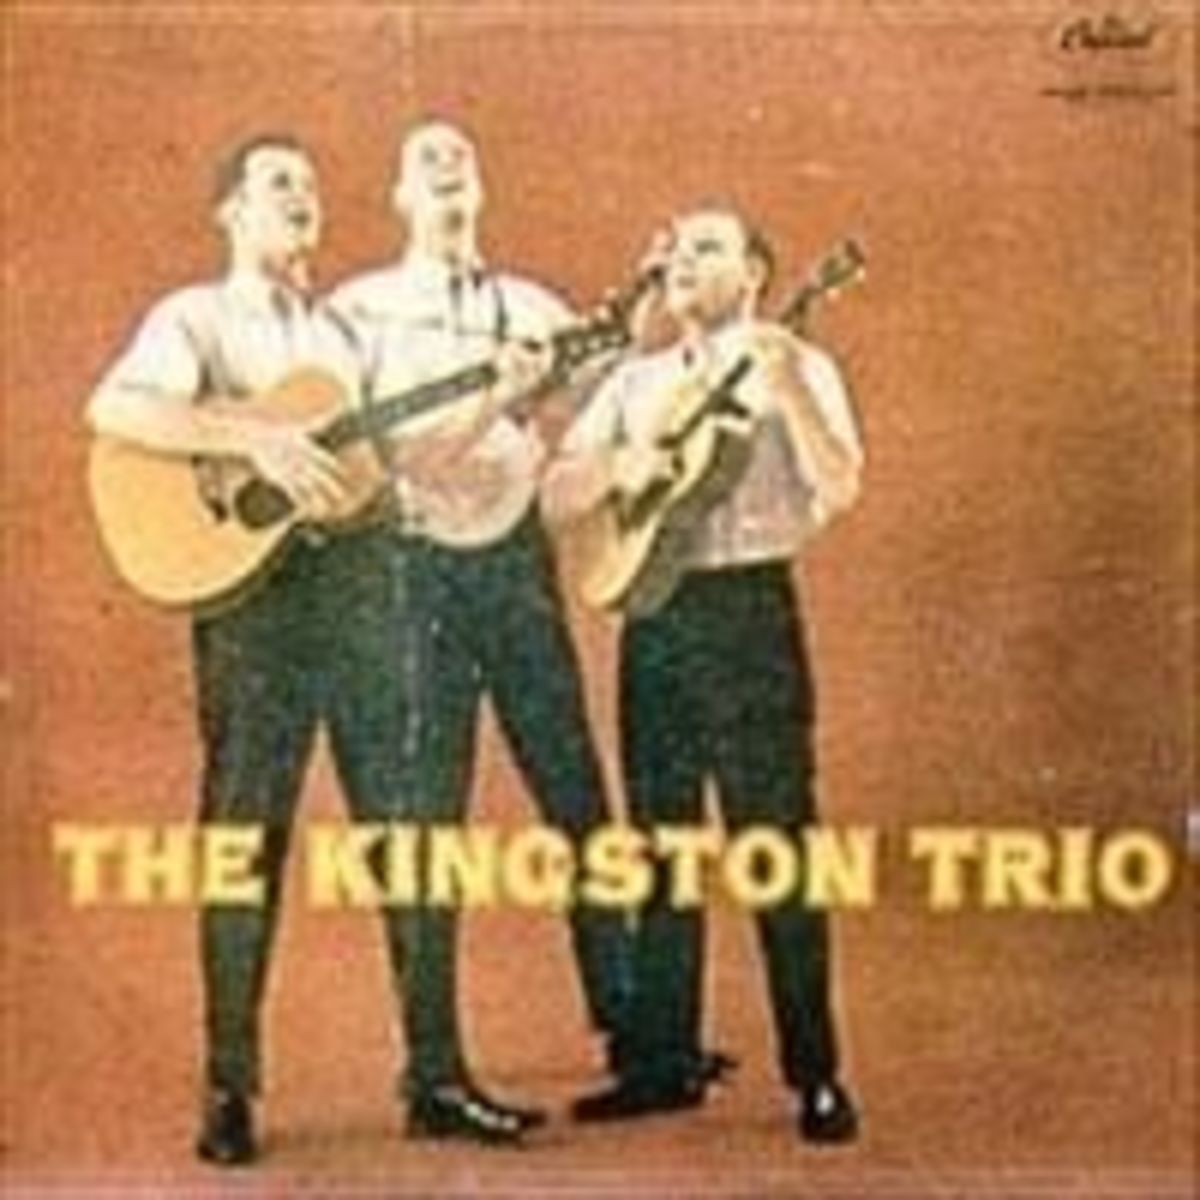 The Kingston Trio, Unique and Influencial Folk Group